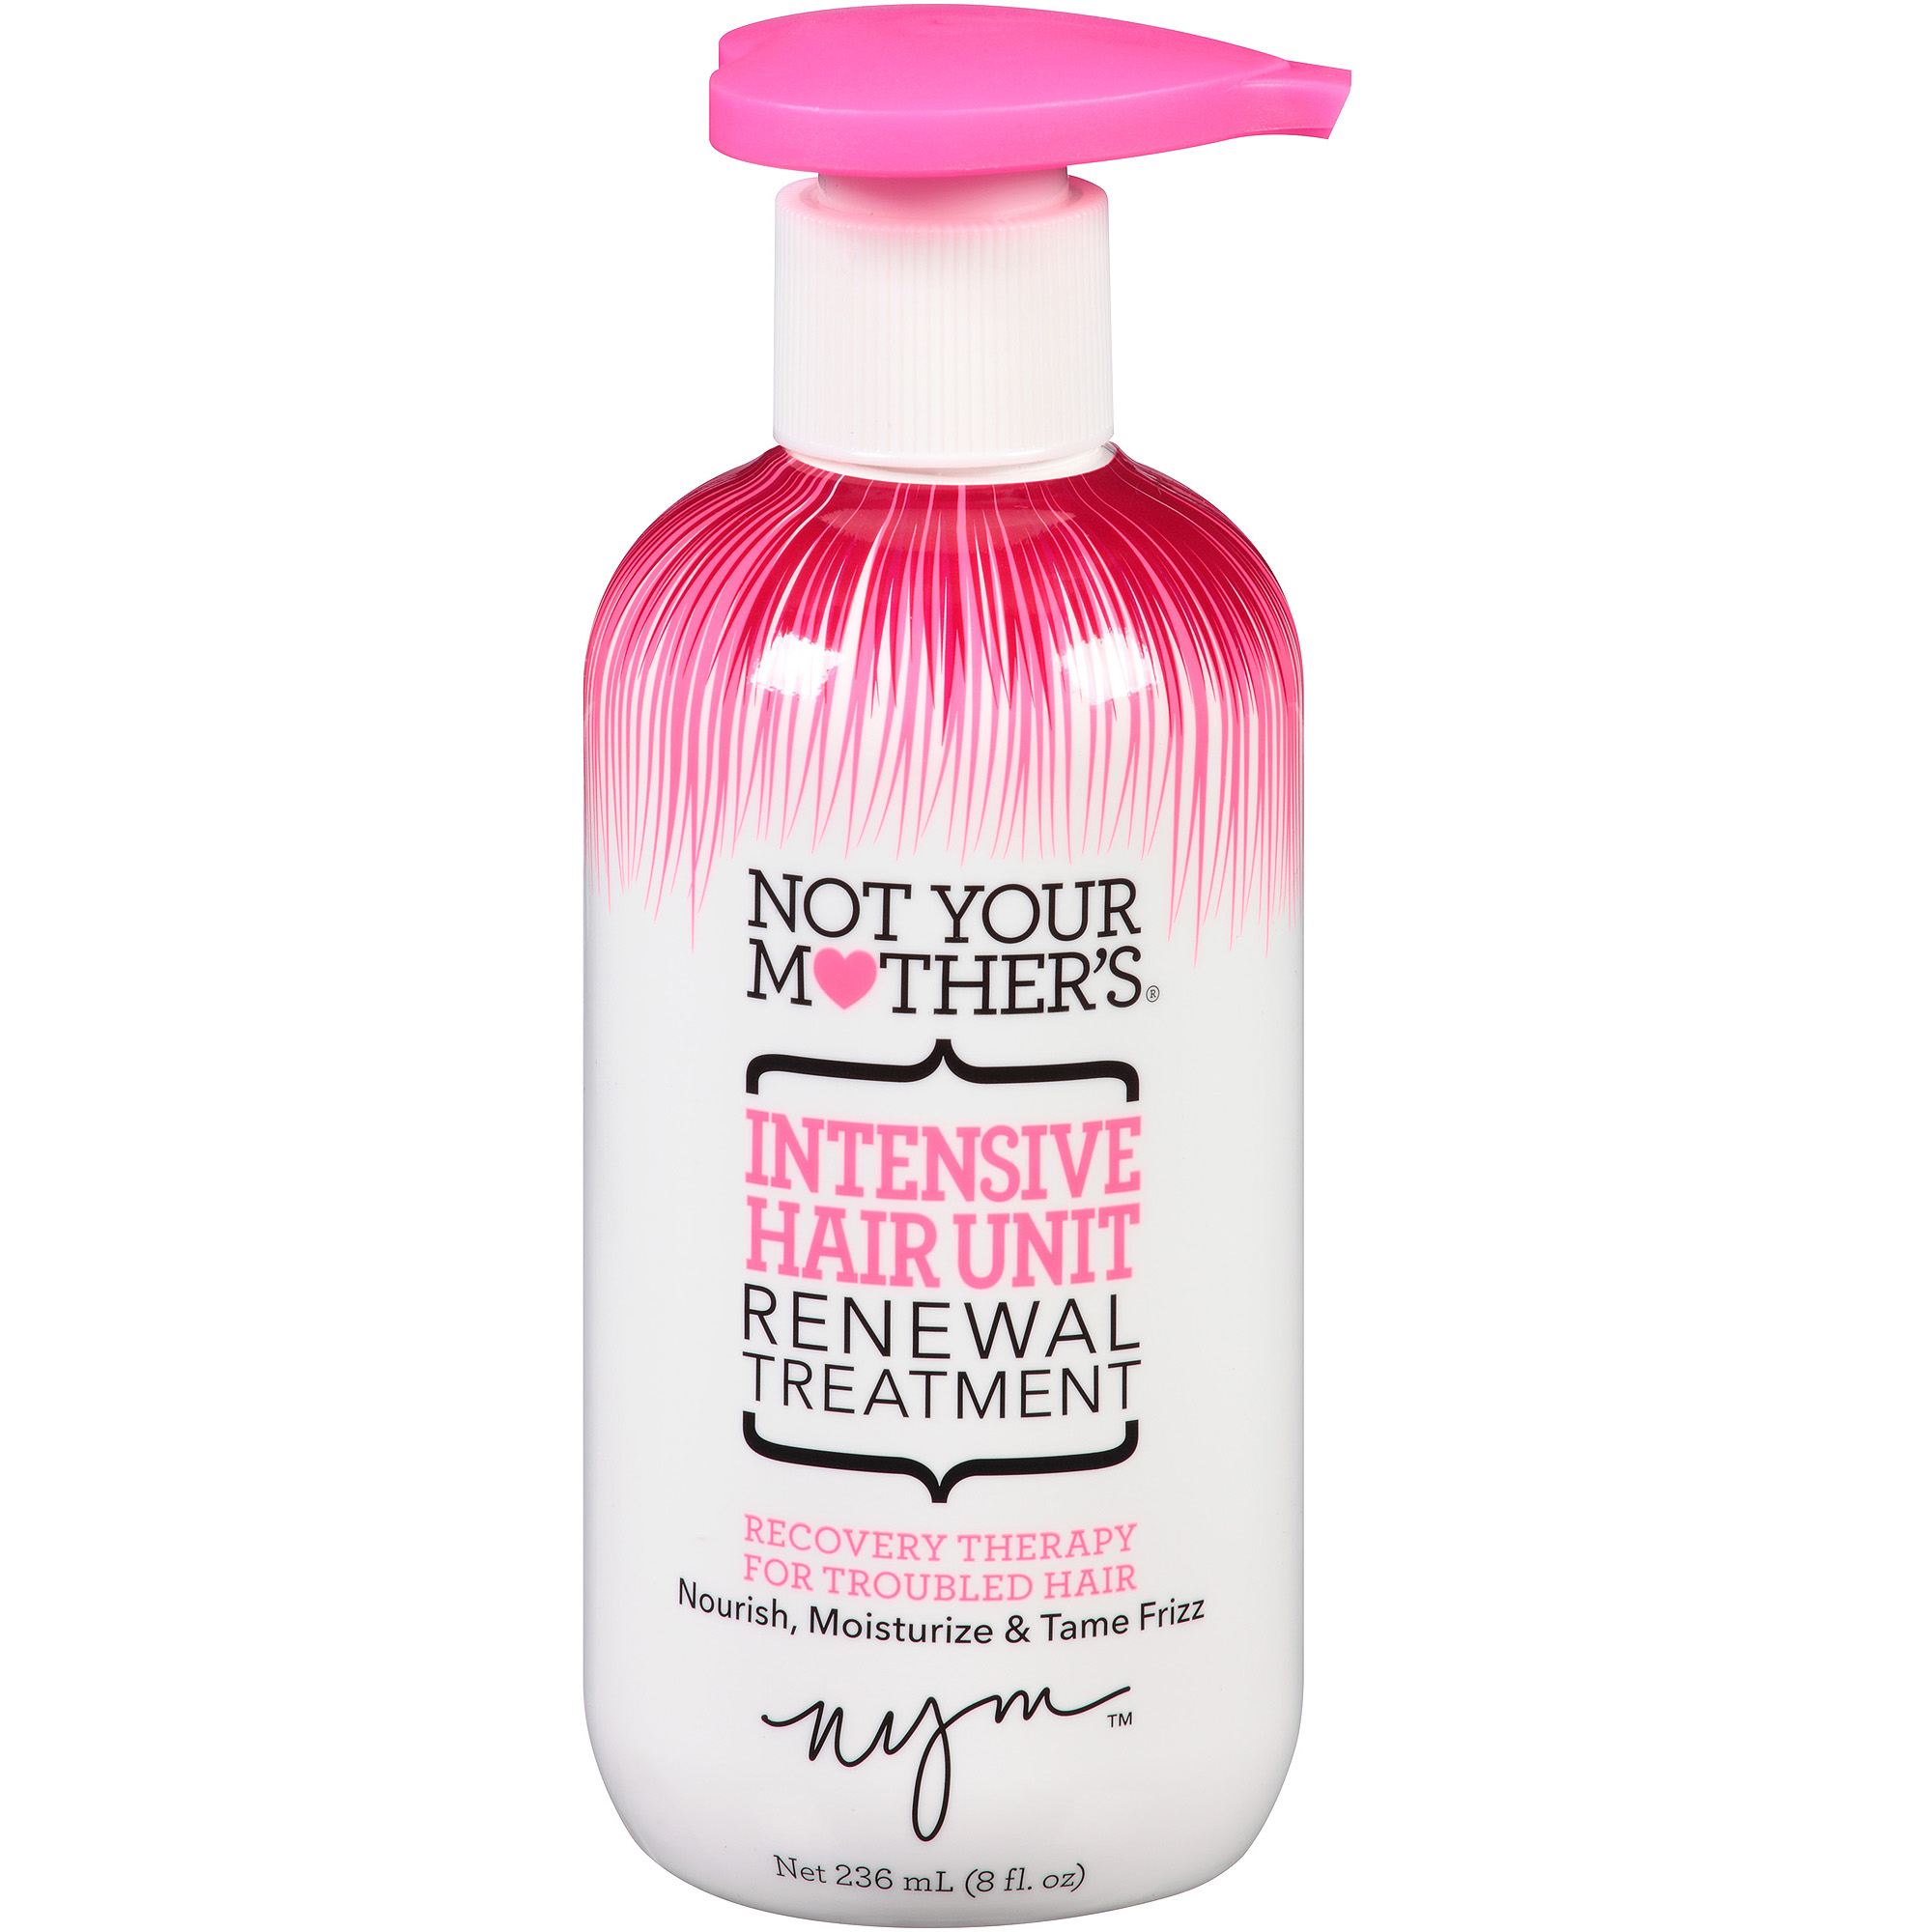 Not Your Mother's Intensive Hair Unit Renewal Treatment, 8 fl oz